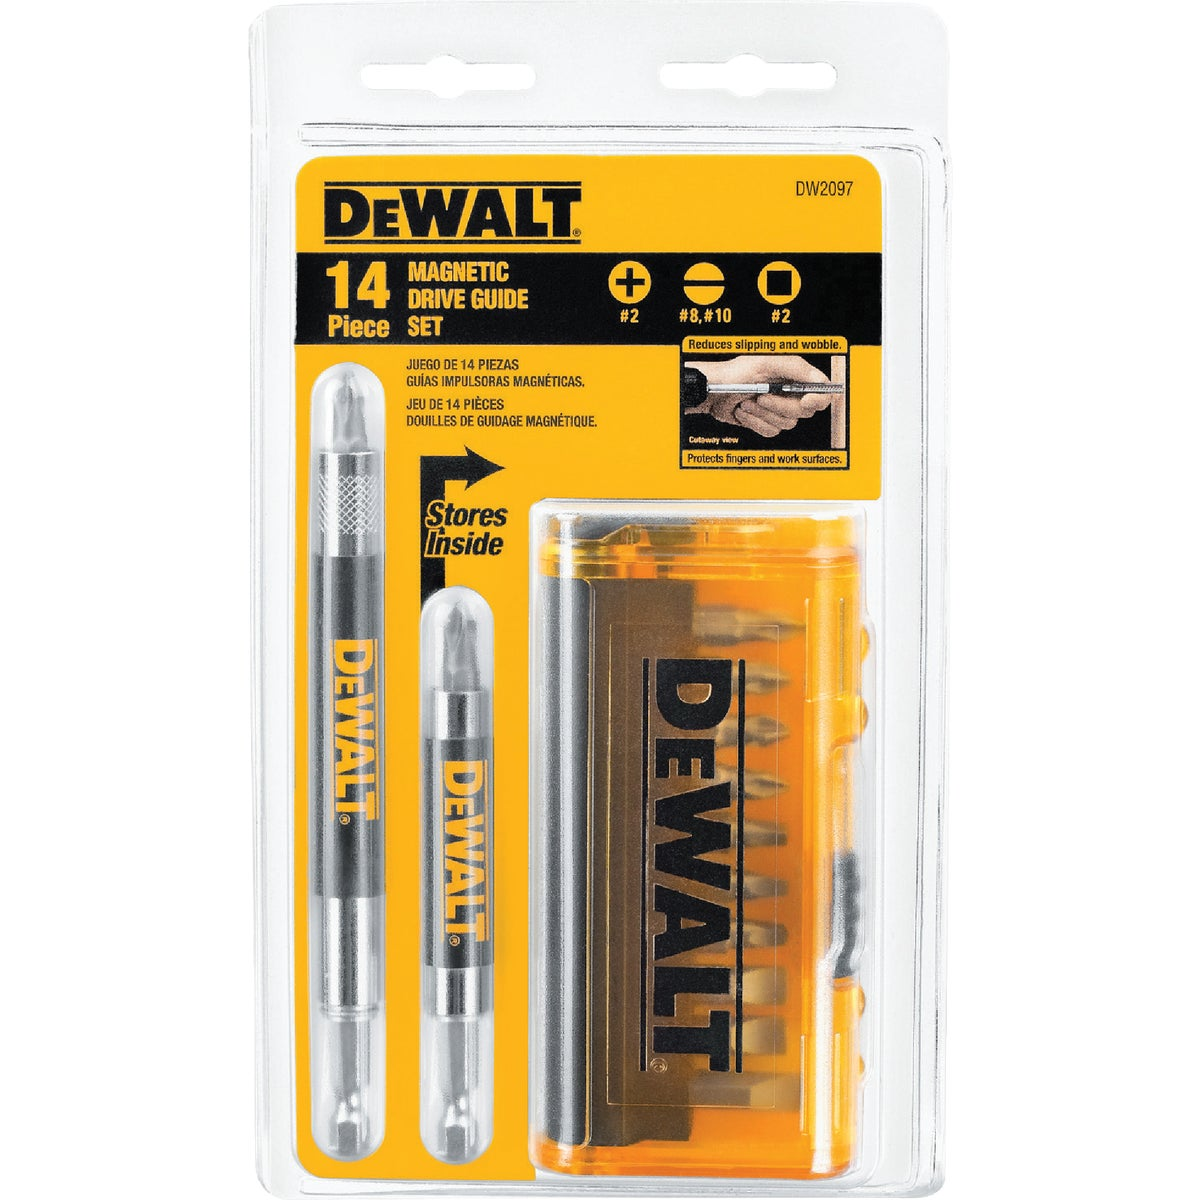 14PC DRIVE GUIDE SET - DW2097 by DeWalt